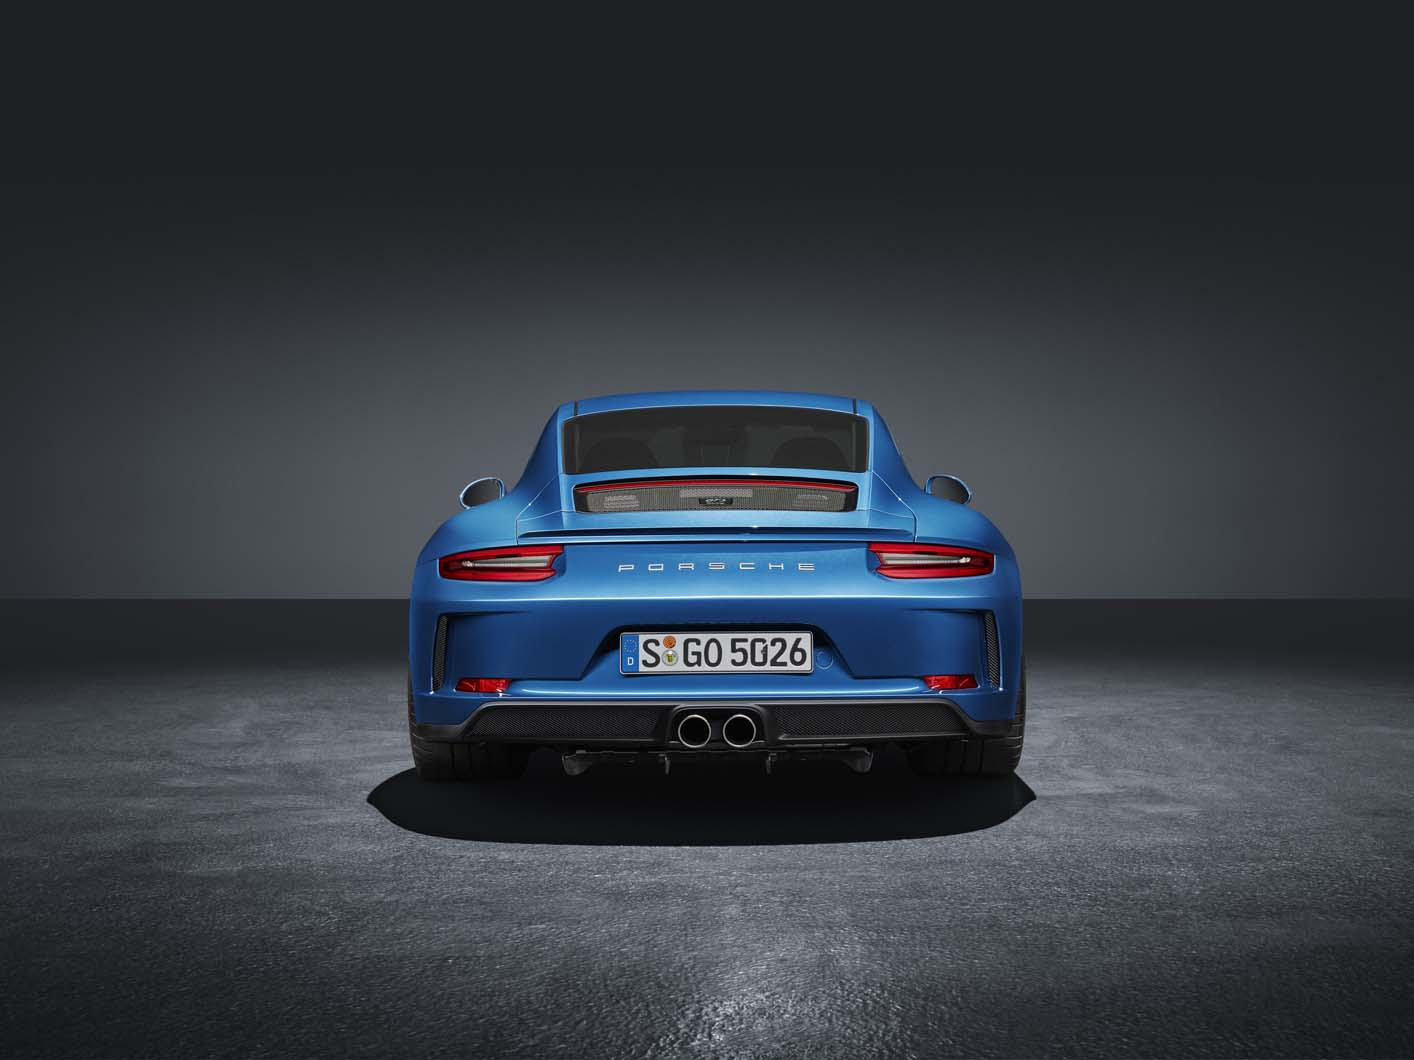 Porsche 911 gt3 rs review 2017 autocar - In A Further Departure From The Standard 911 Gt3 The Internal Headlight Graphics And Tail Light Lenses Are Darkened In Colour